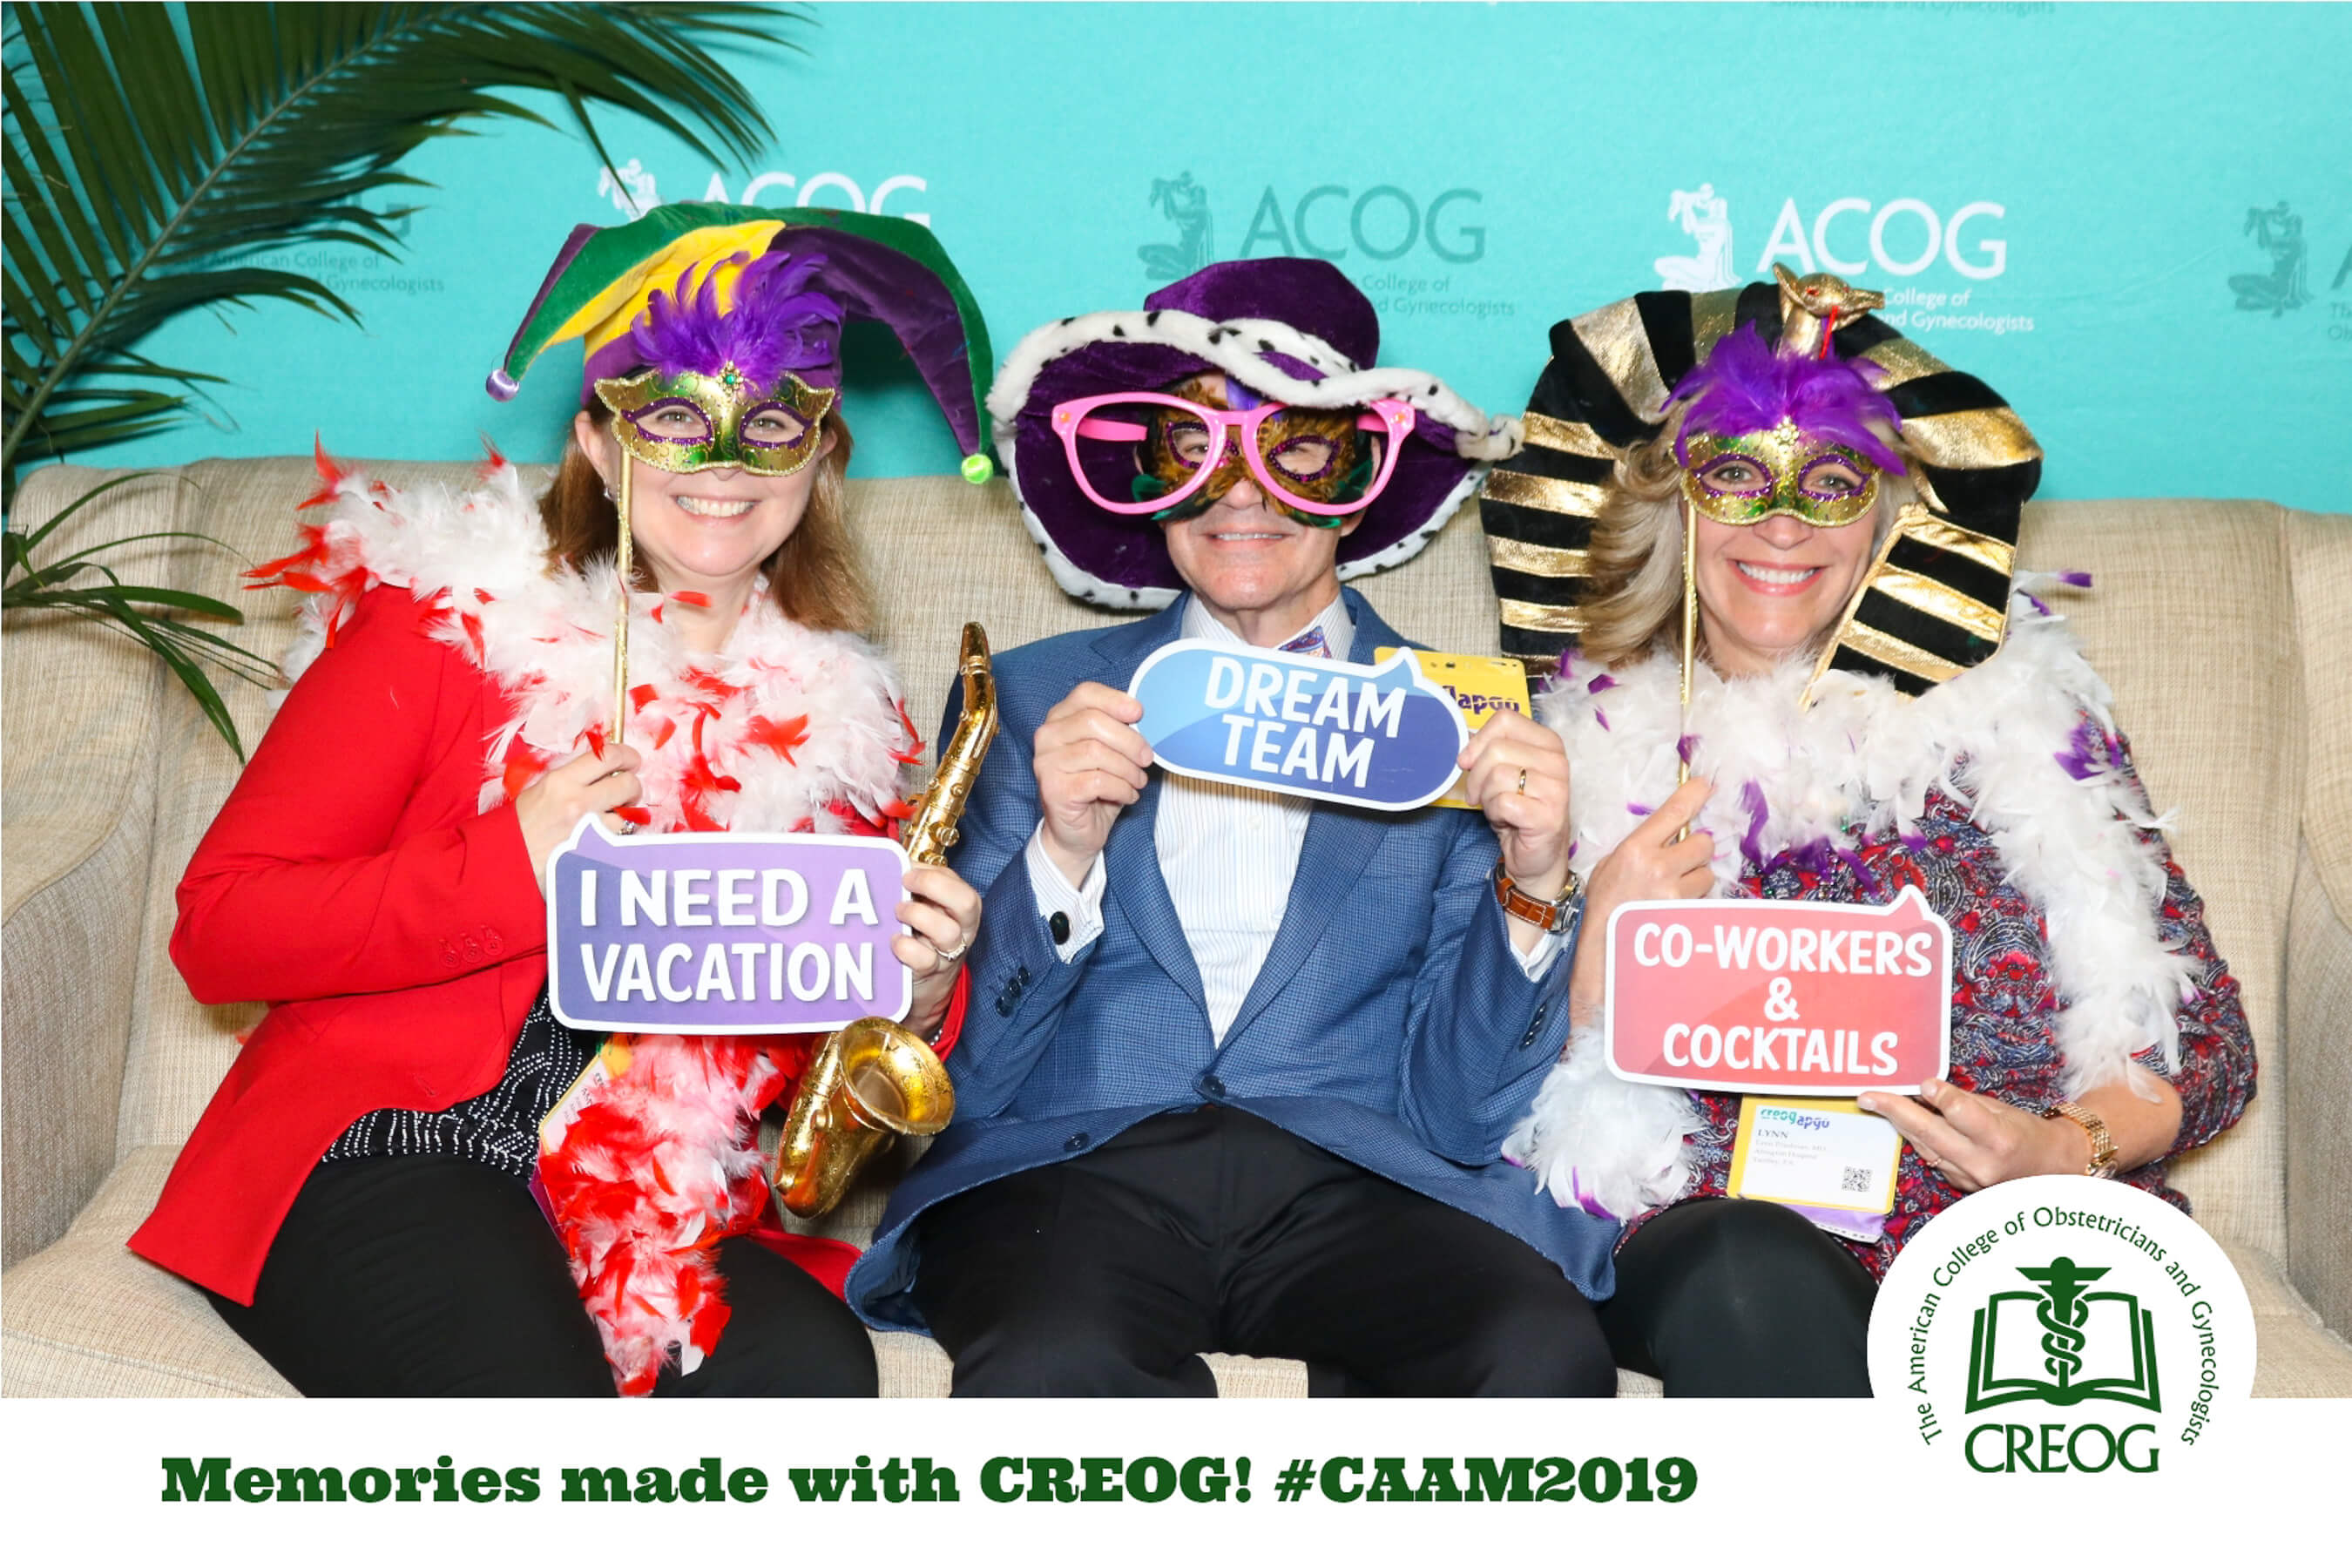 Party guests taking a photo booth picture in silly costumes